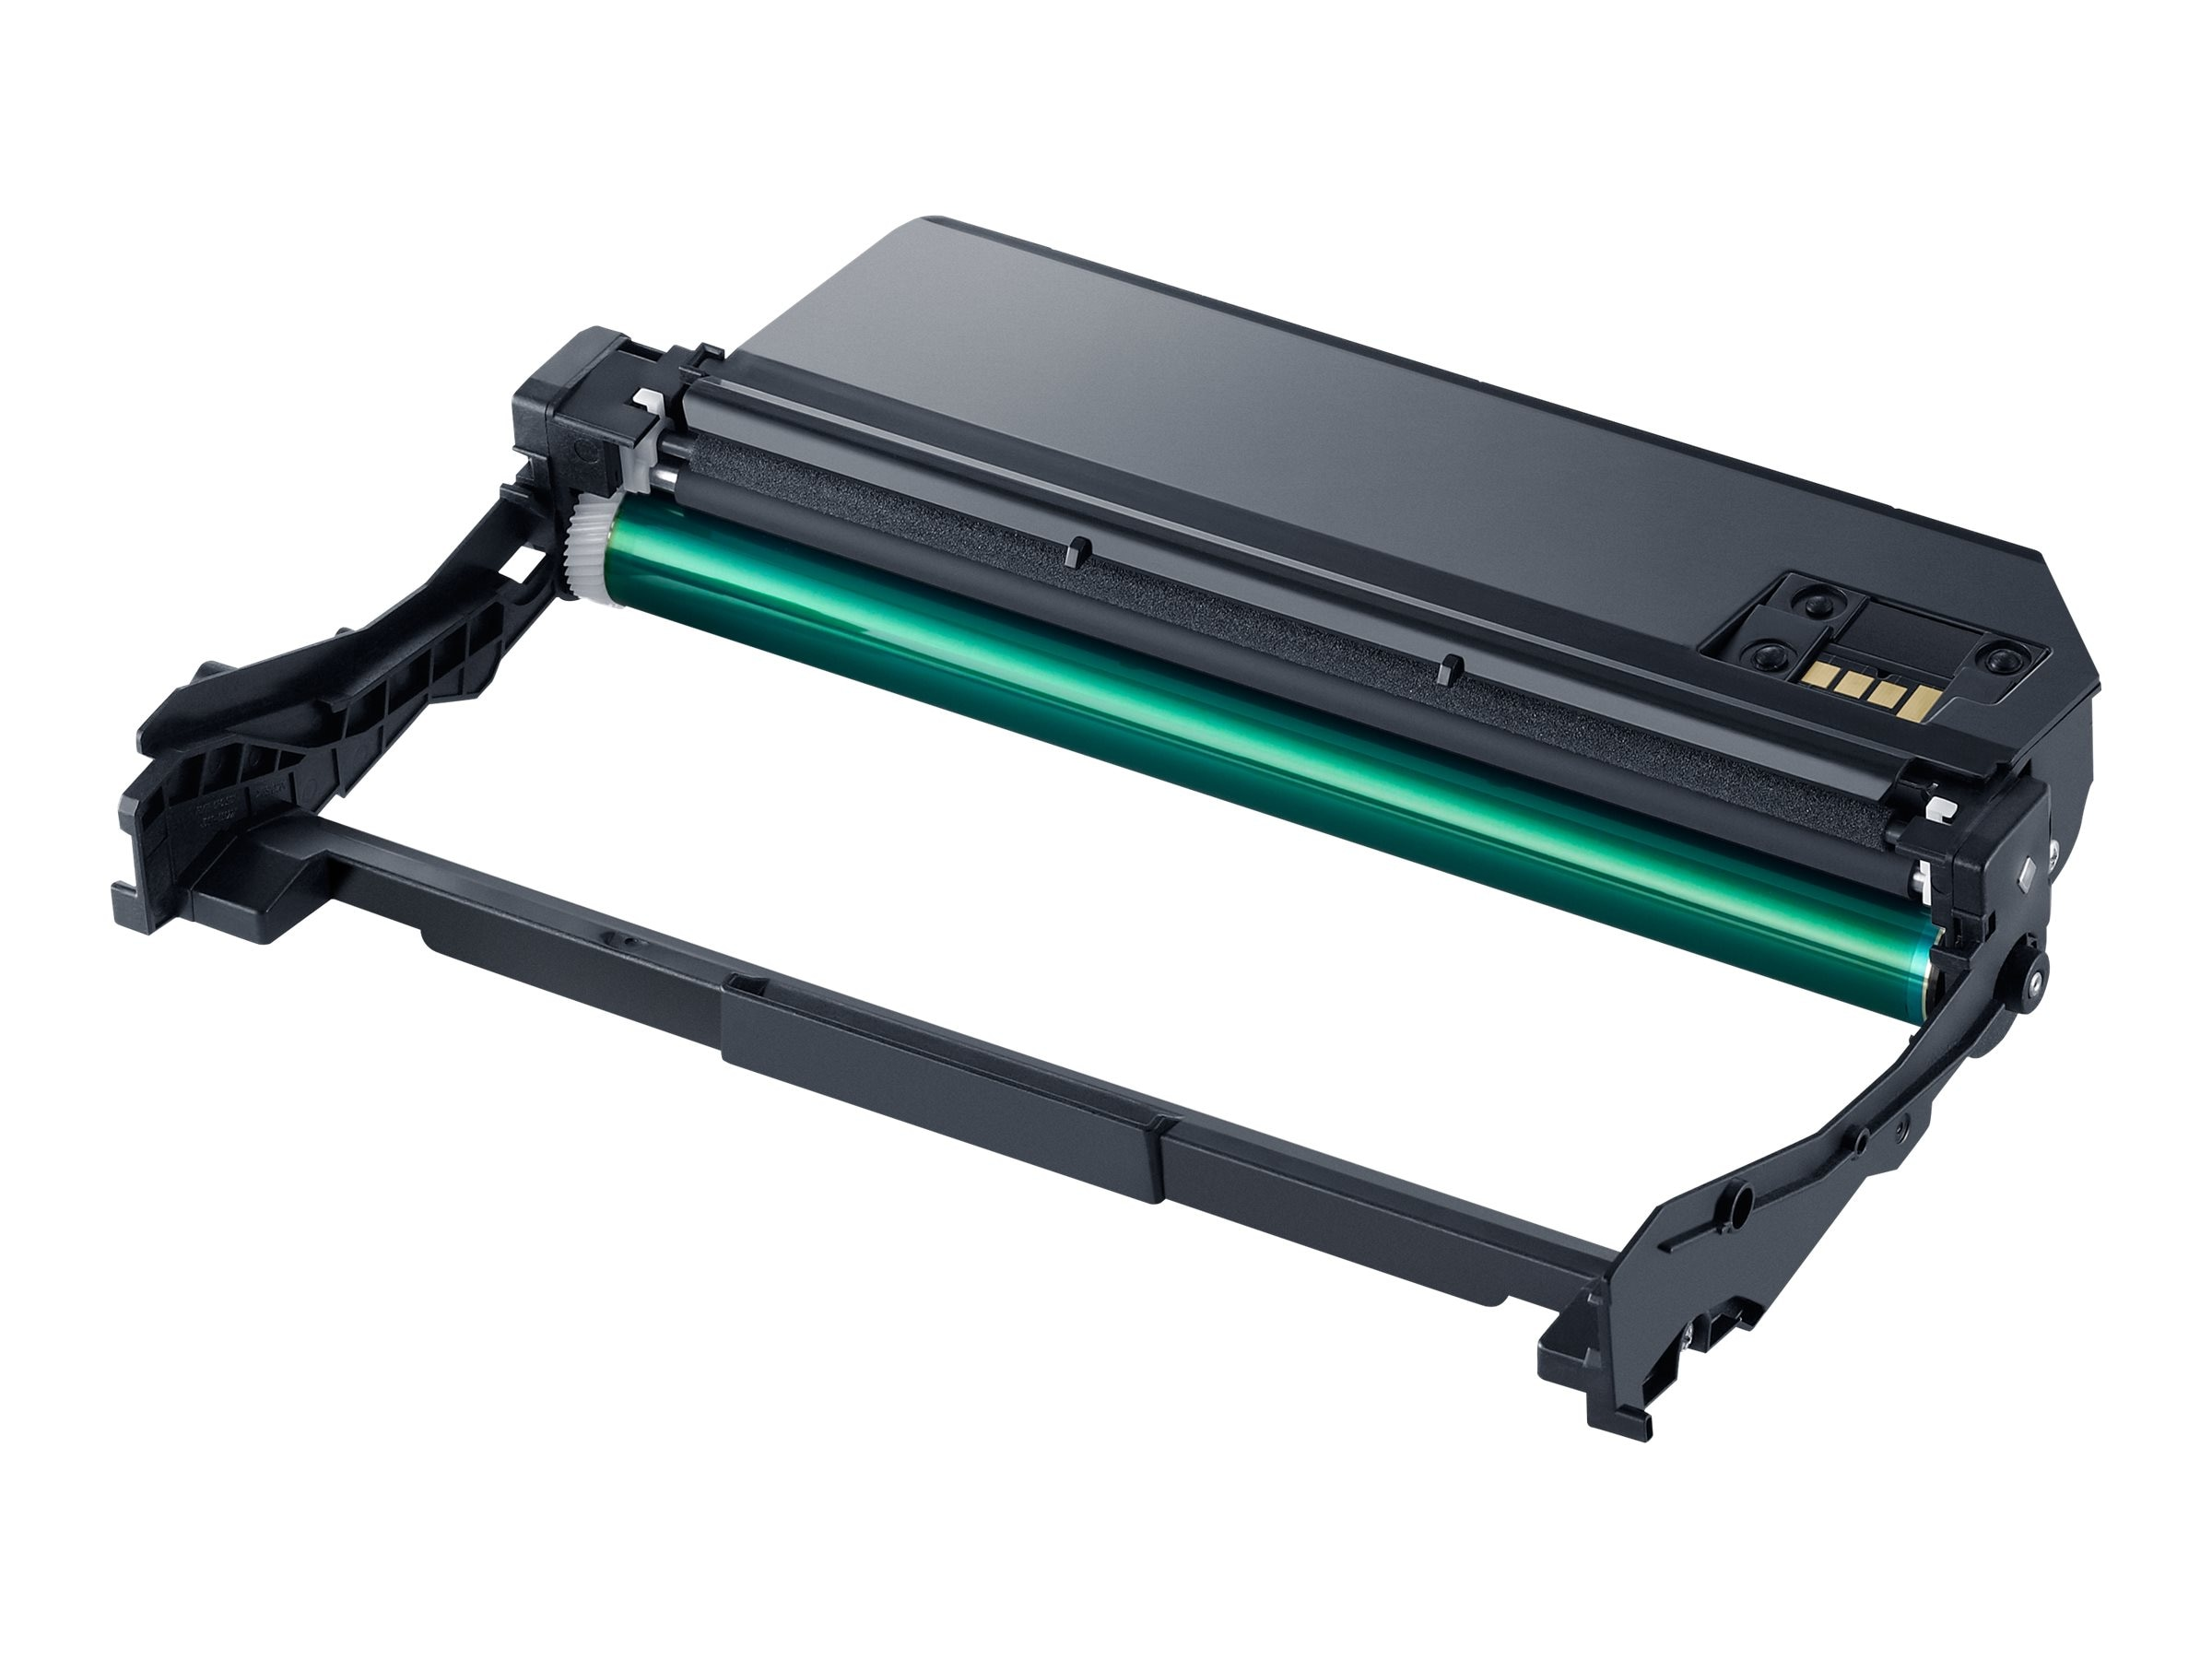 Samsung Imaging Unit for Xpress SL-M2625, SL-2626, SL-2825, SL-2826, SL-M2675, SL-2676, SL-2875, SL-2875